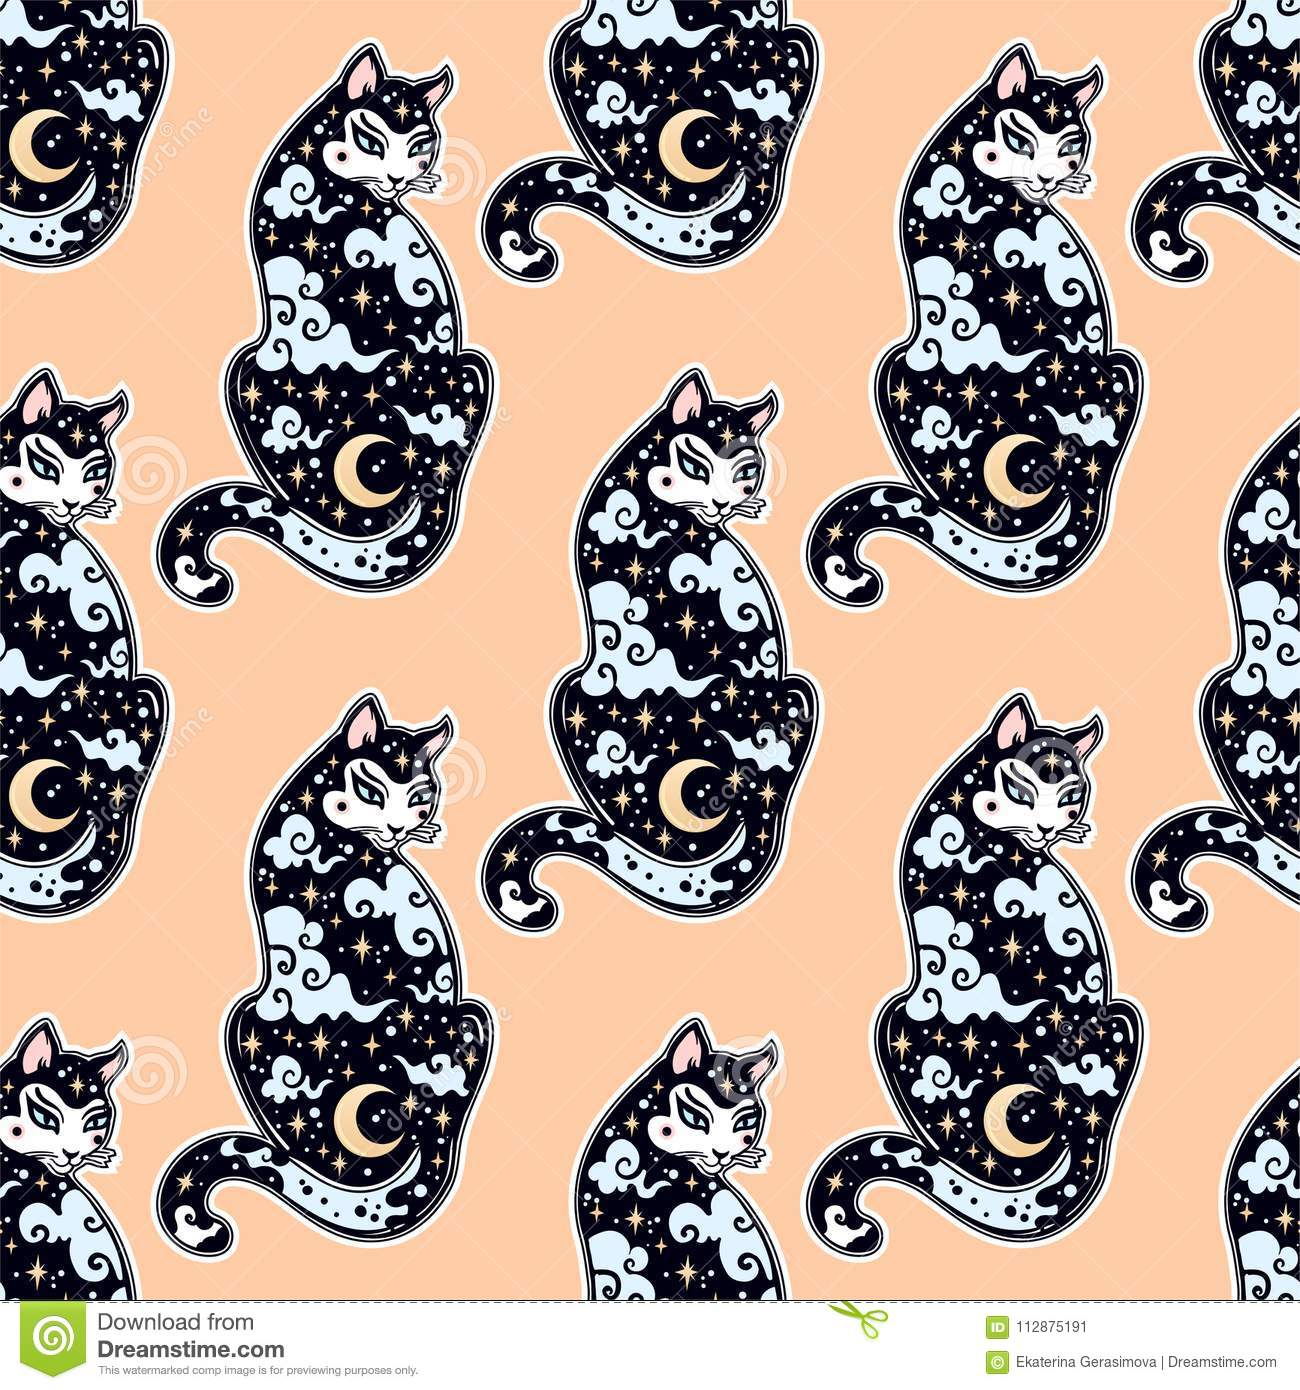 585f6ef2c7b flash-style-japanese-cat-moon-sky-oriental-seamless-pattern -traditional-asian-kitten-repetition-background-pop-art-item-112875191.jpg